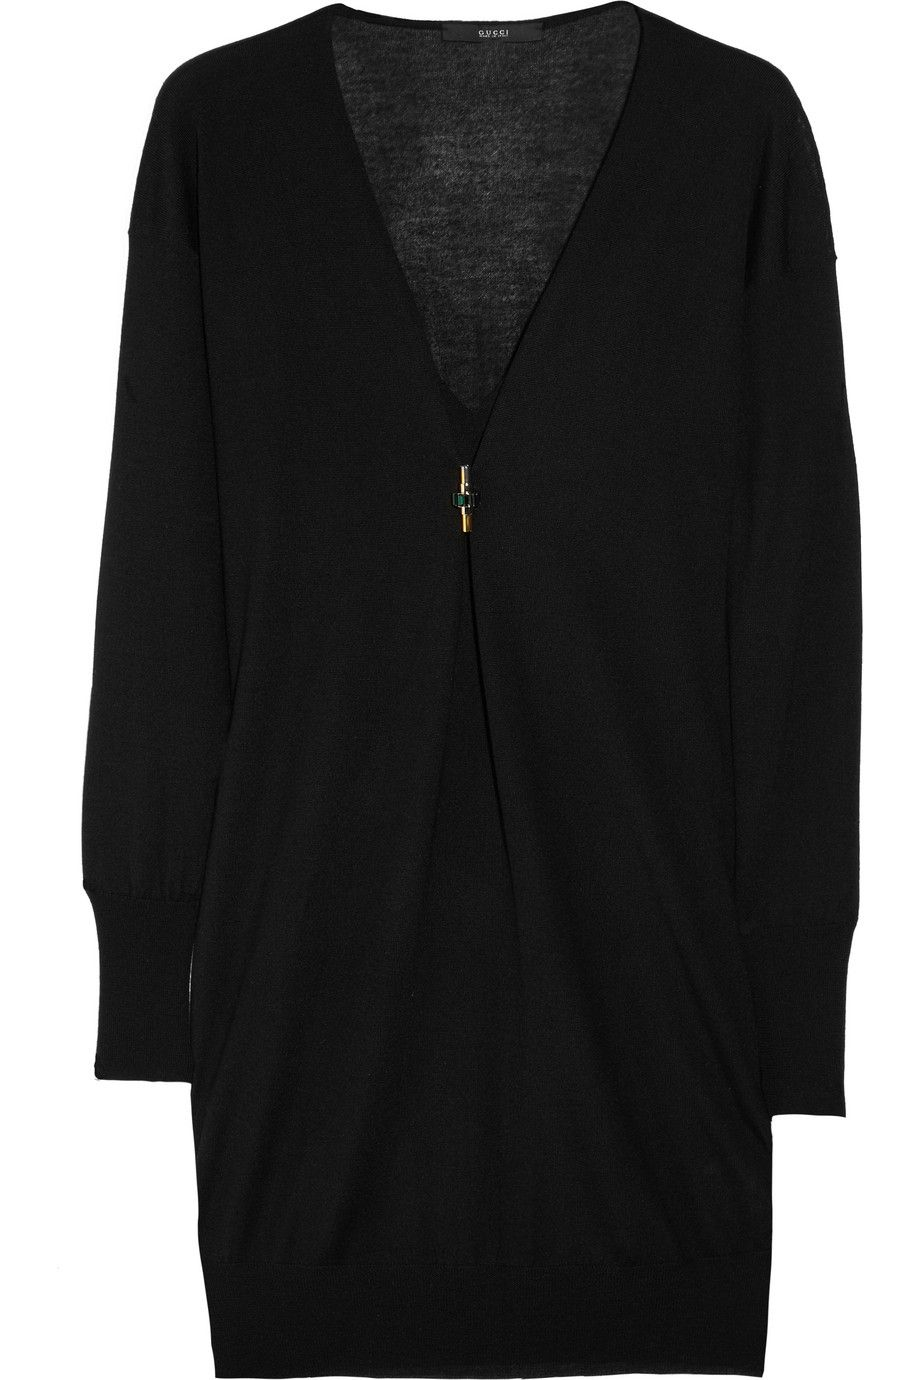 Gucci #black #cashmere #sweater | Style / ladies | Pinterest ...